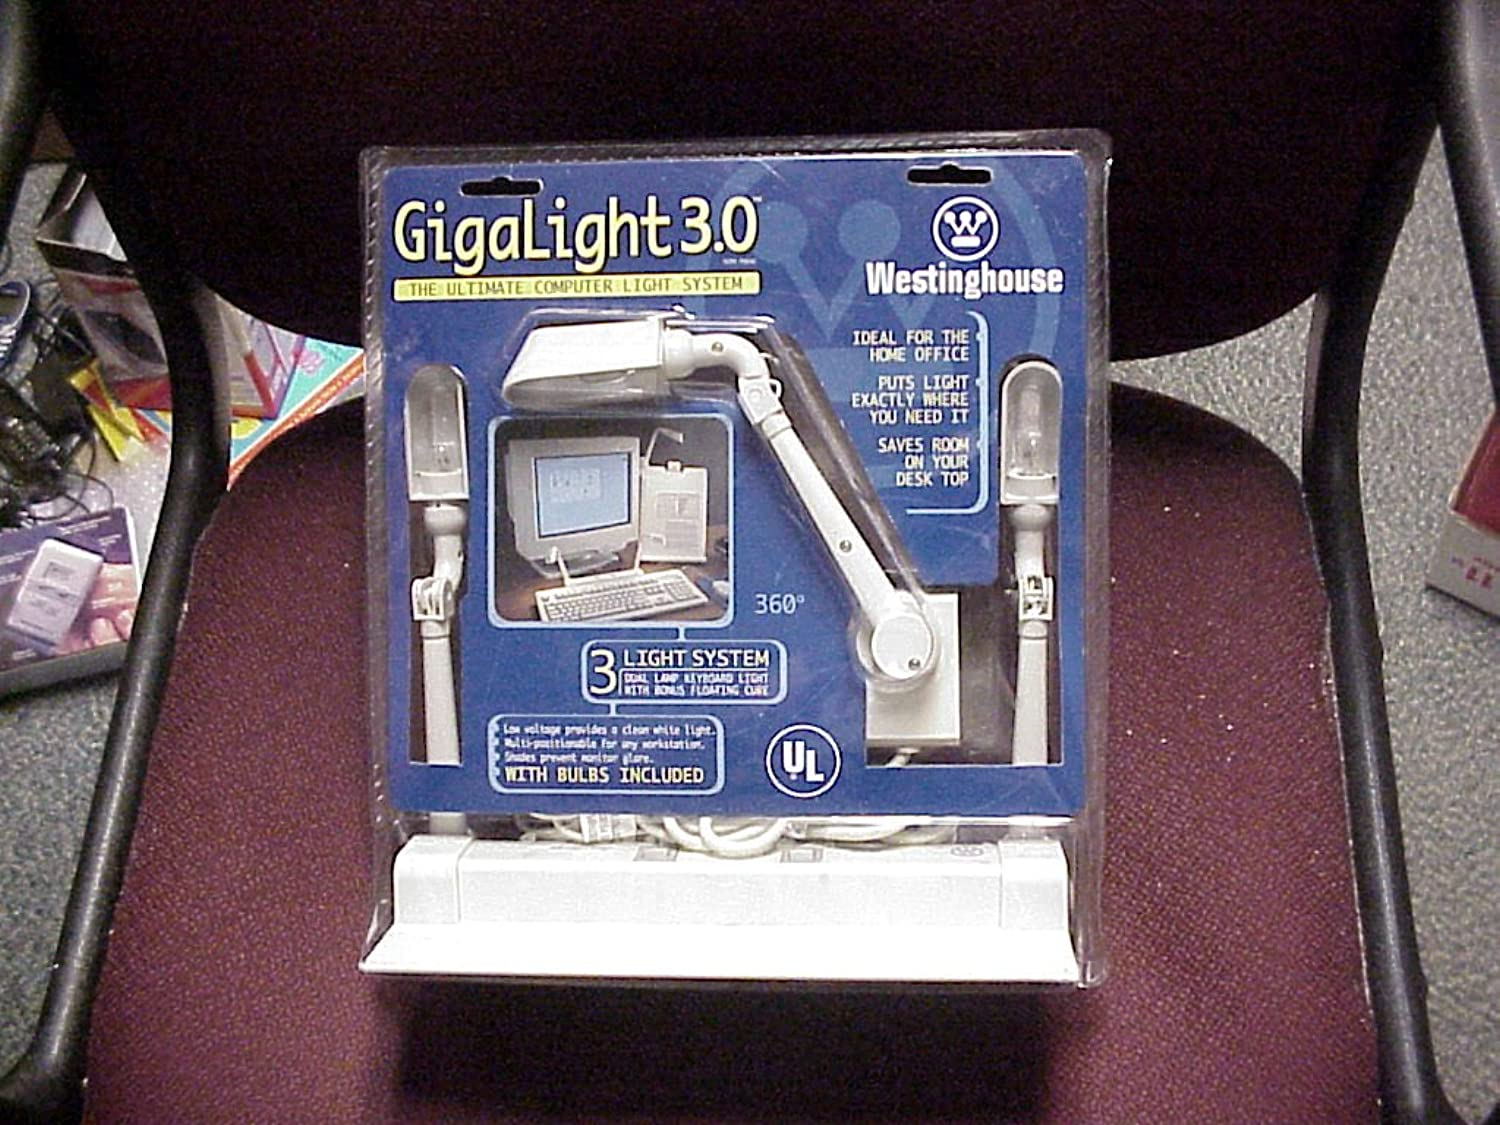 GigaLight 3.0 The Ultimate Computer Light System